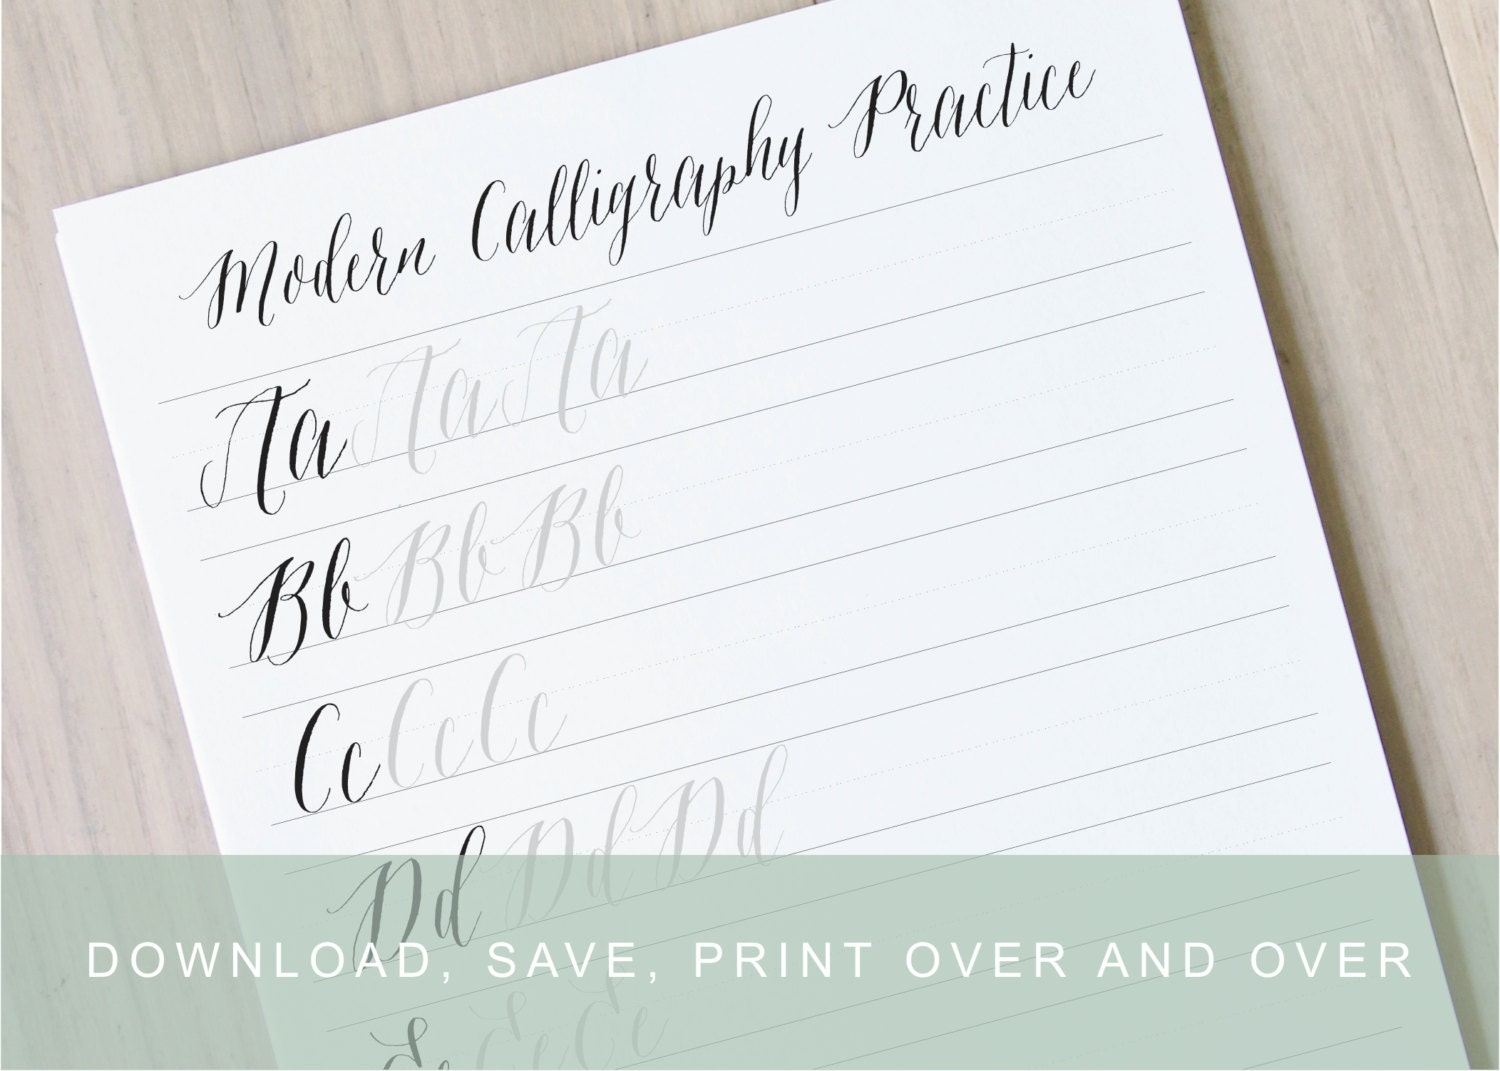 Number Names Worksheets write the number names worksheets : Modern Calligraphy Worksheet, Pointed Pen Calligraphy Alphabet ...